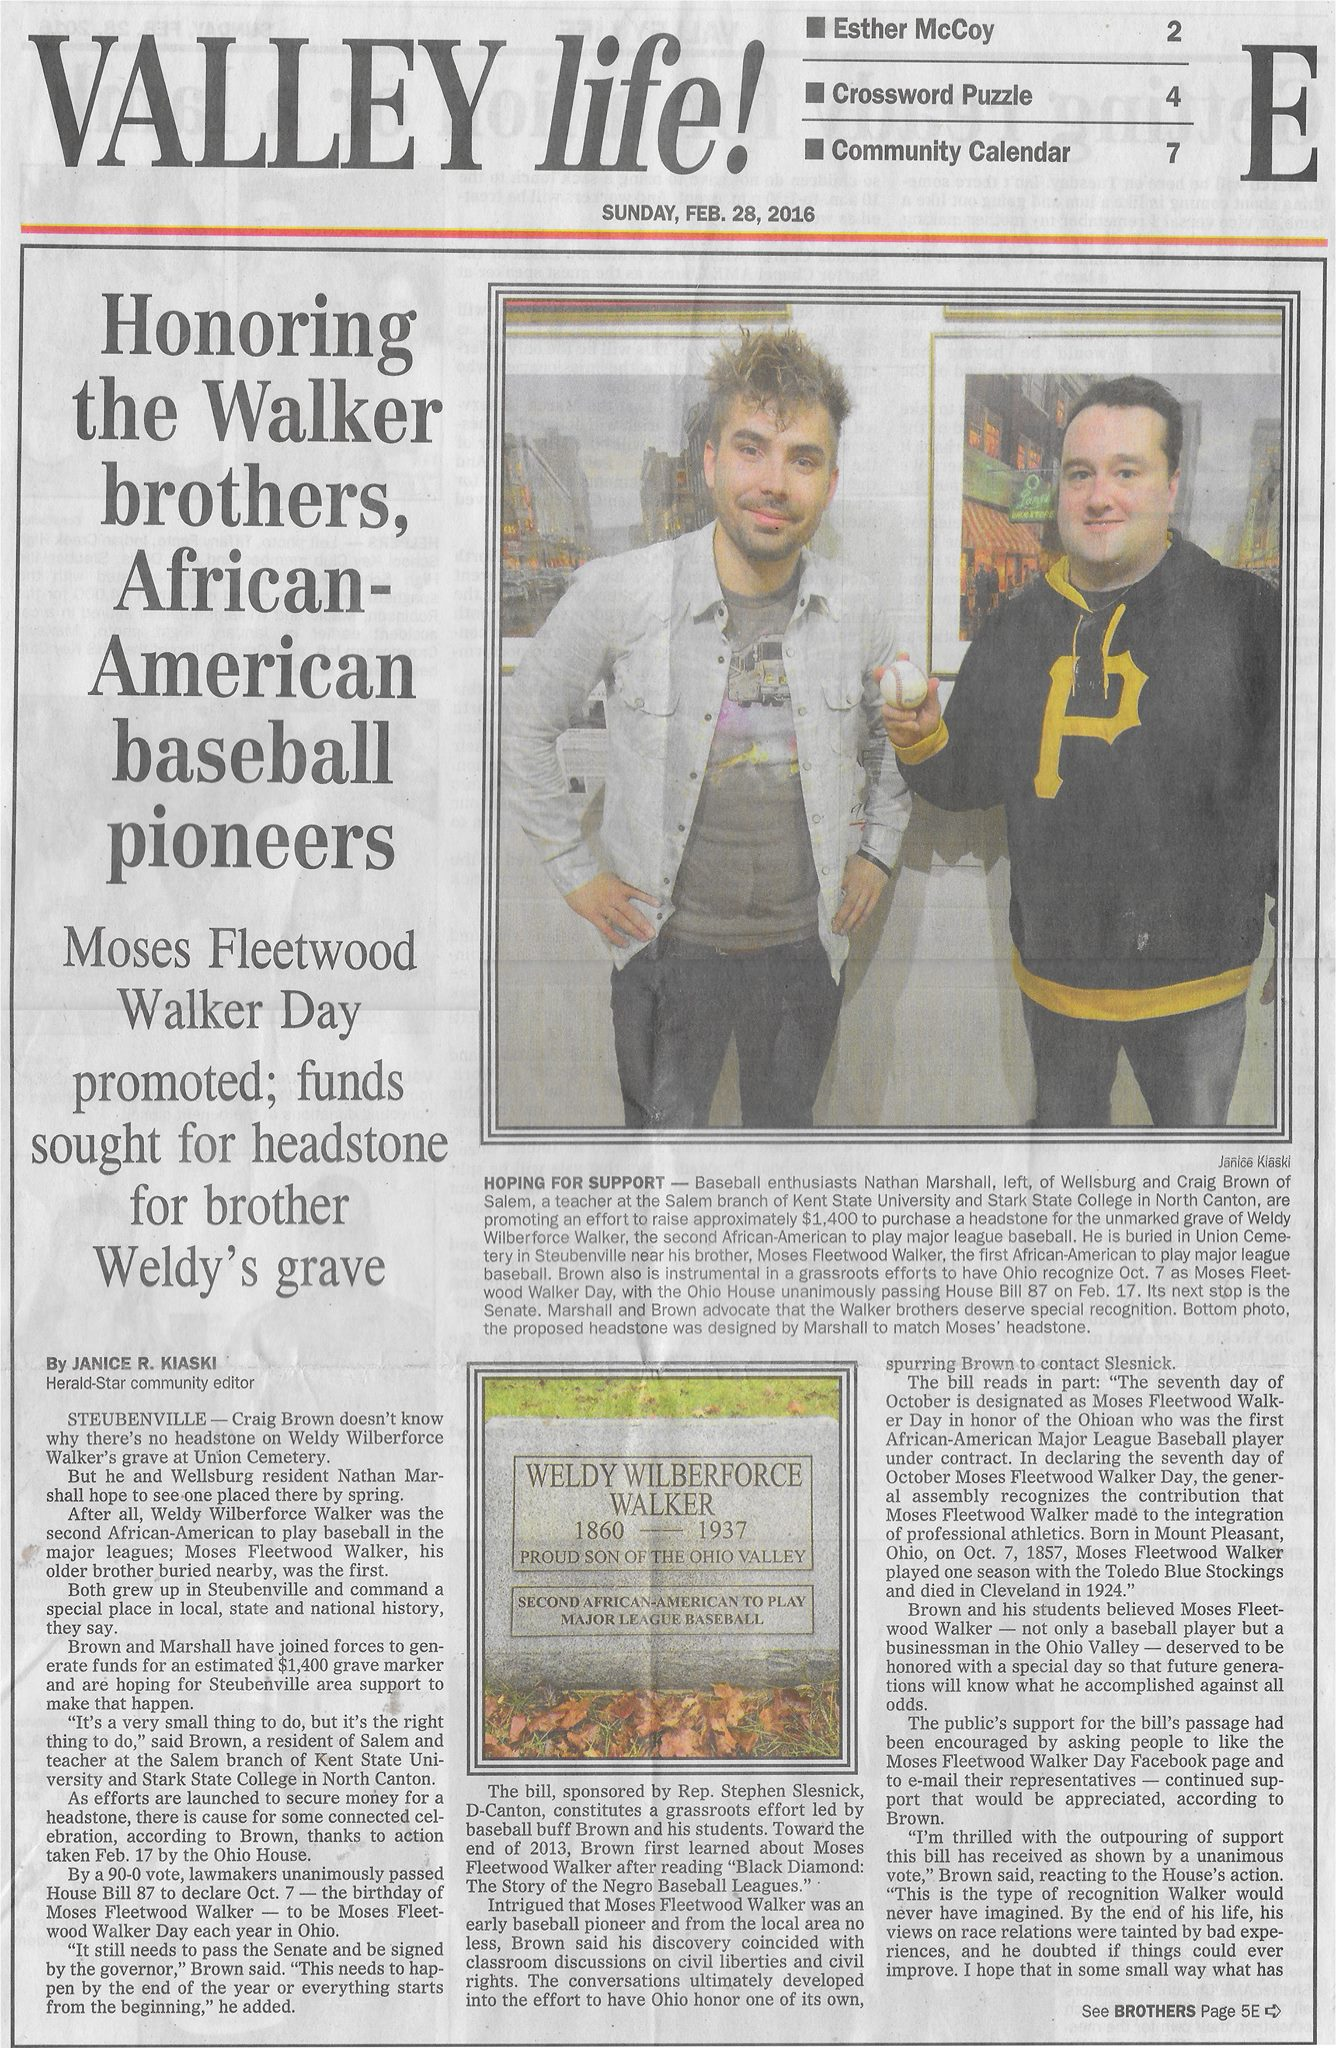 SOME PRESS ON THE WORK I DID TO GET THE WALKER BROTHERS (THE FIRST TWO AFRICAN-AMERICANS TO PLAY PROFESSIONAL BASEBALL) SOME MUCH NEEDED APPRECIATION